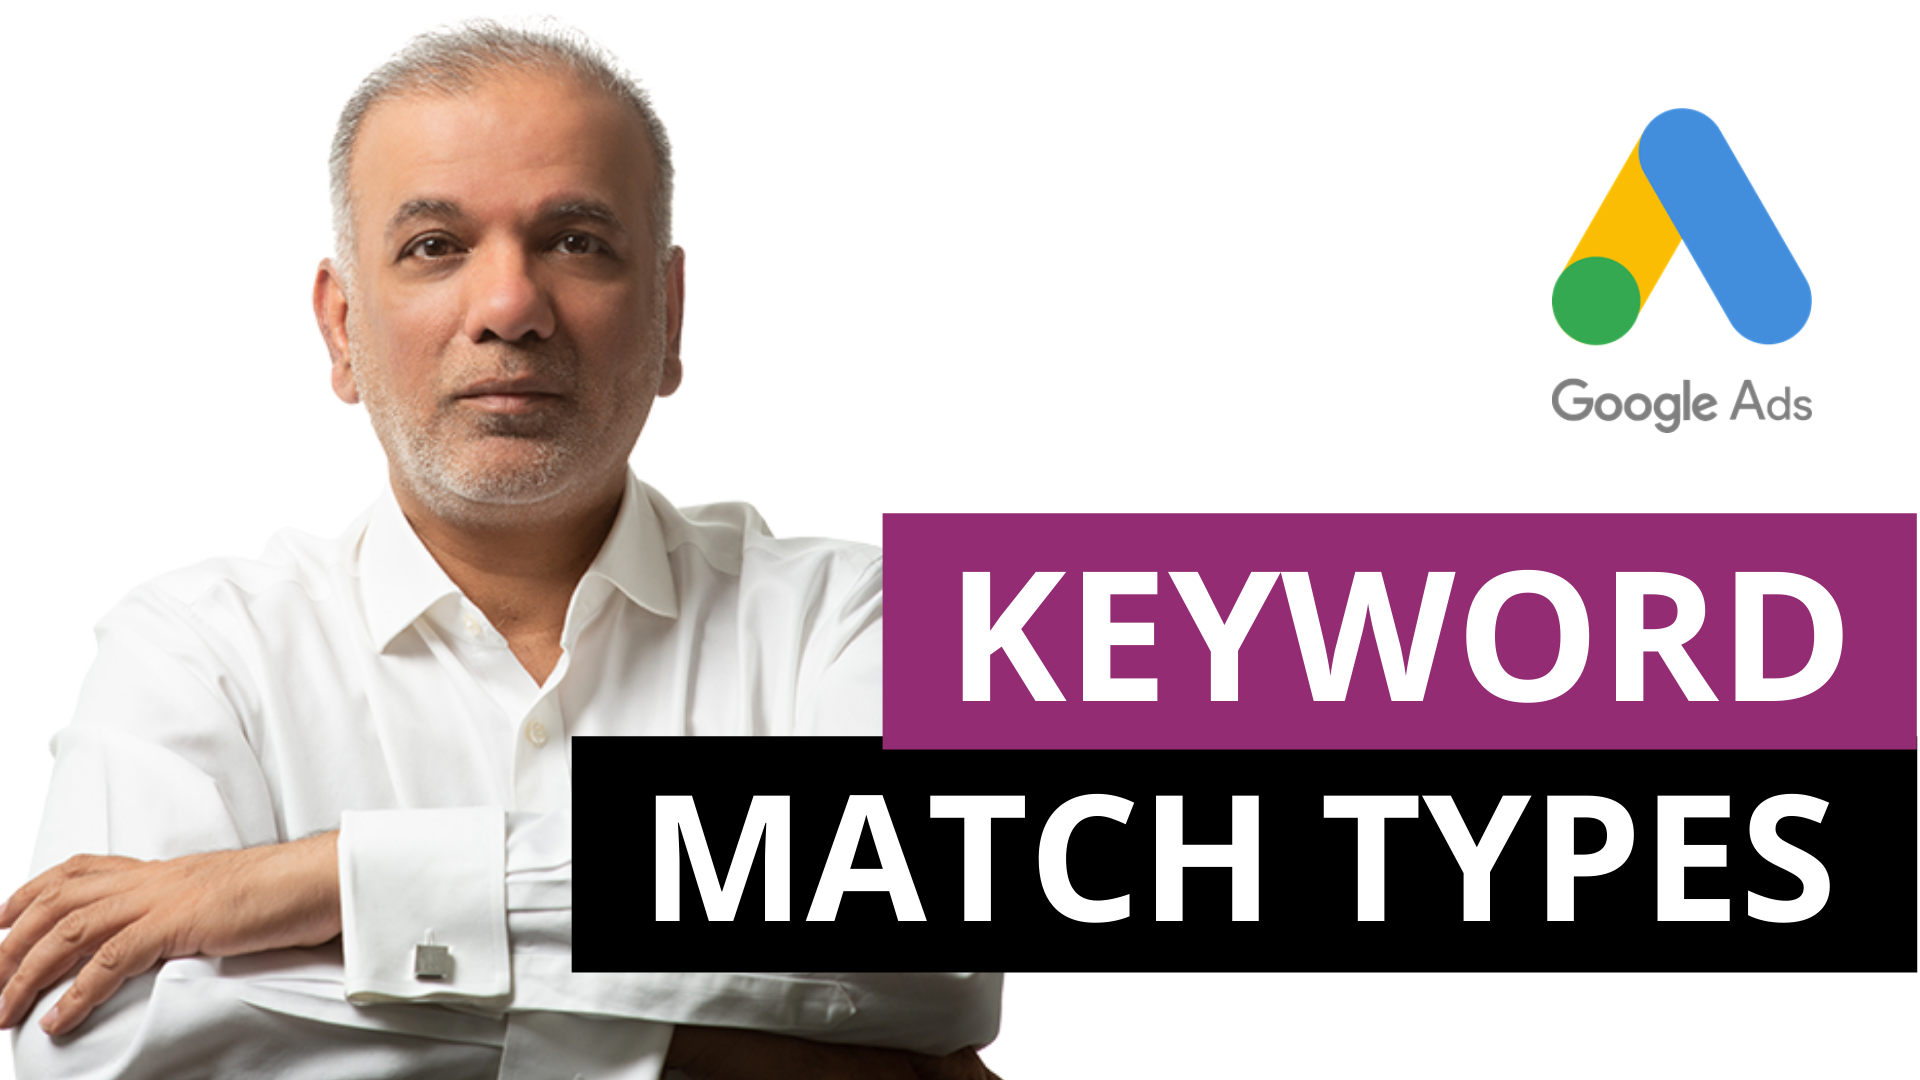 How to Increase Traffic With Right Keyword Match Types in Google Ads